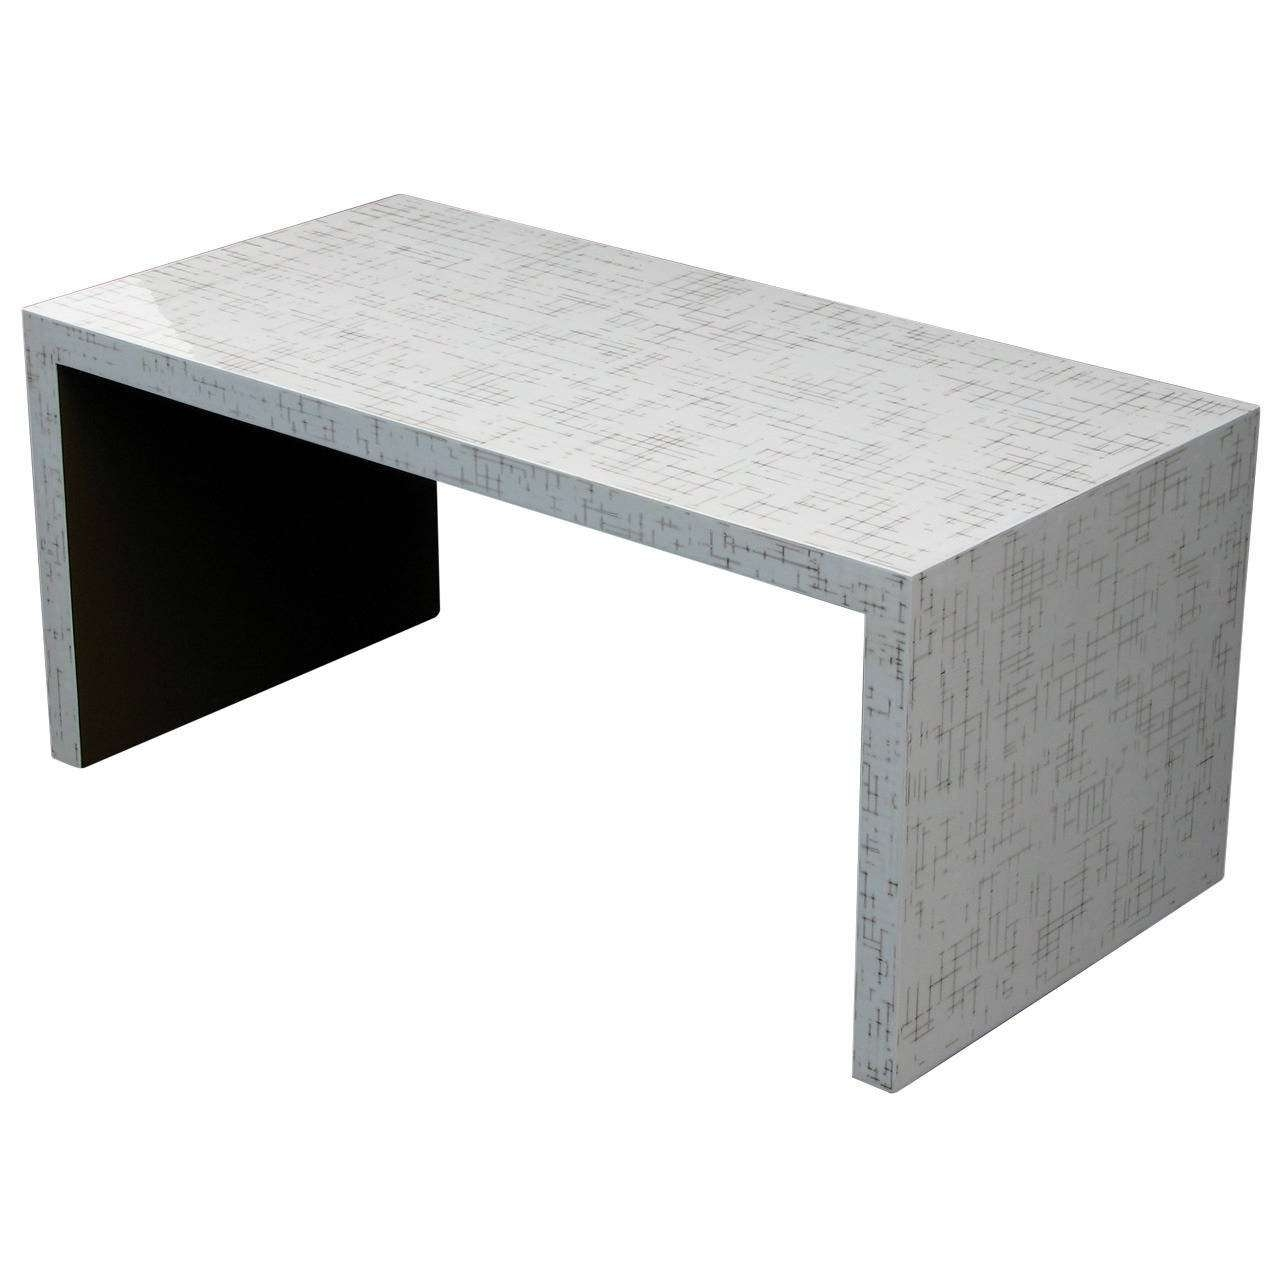 Dusted Lacquer Waterfall Table For Sale At 1Stdibs Inside Most Popular Lacquer Coffee Tables (View 6 of 20)